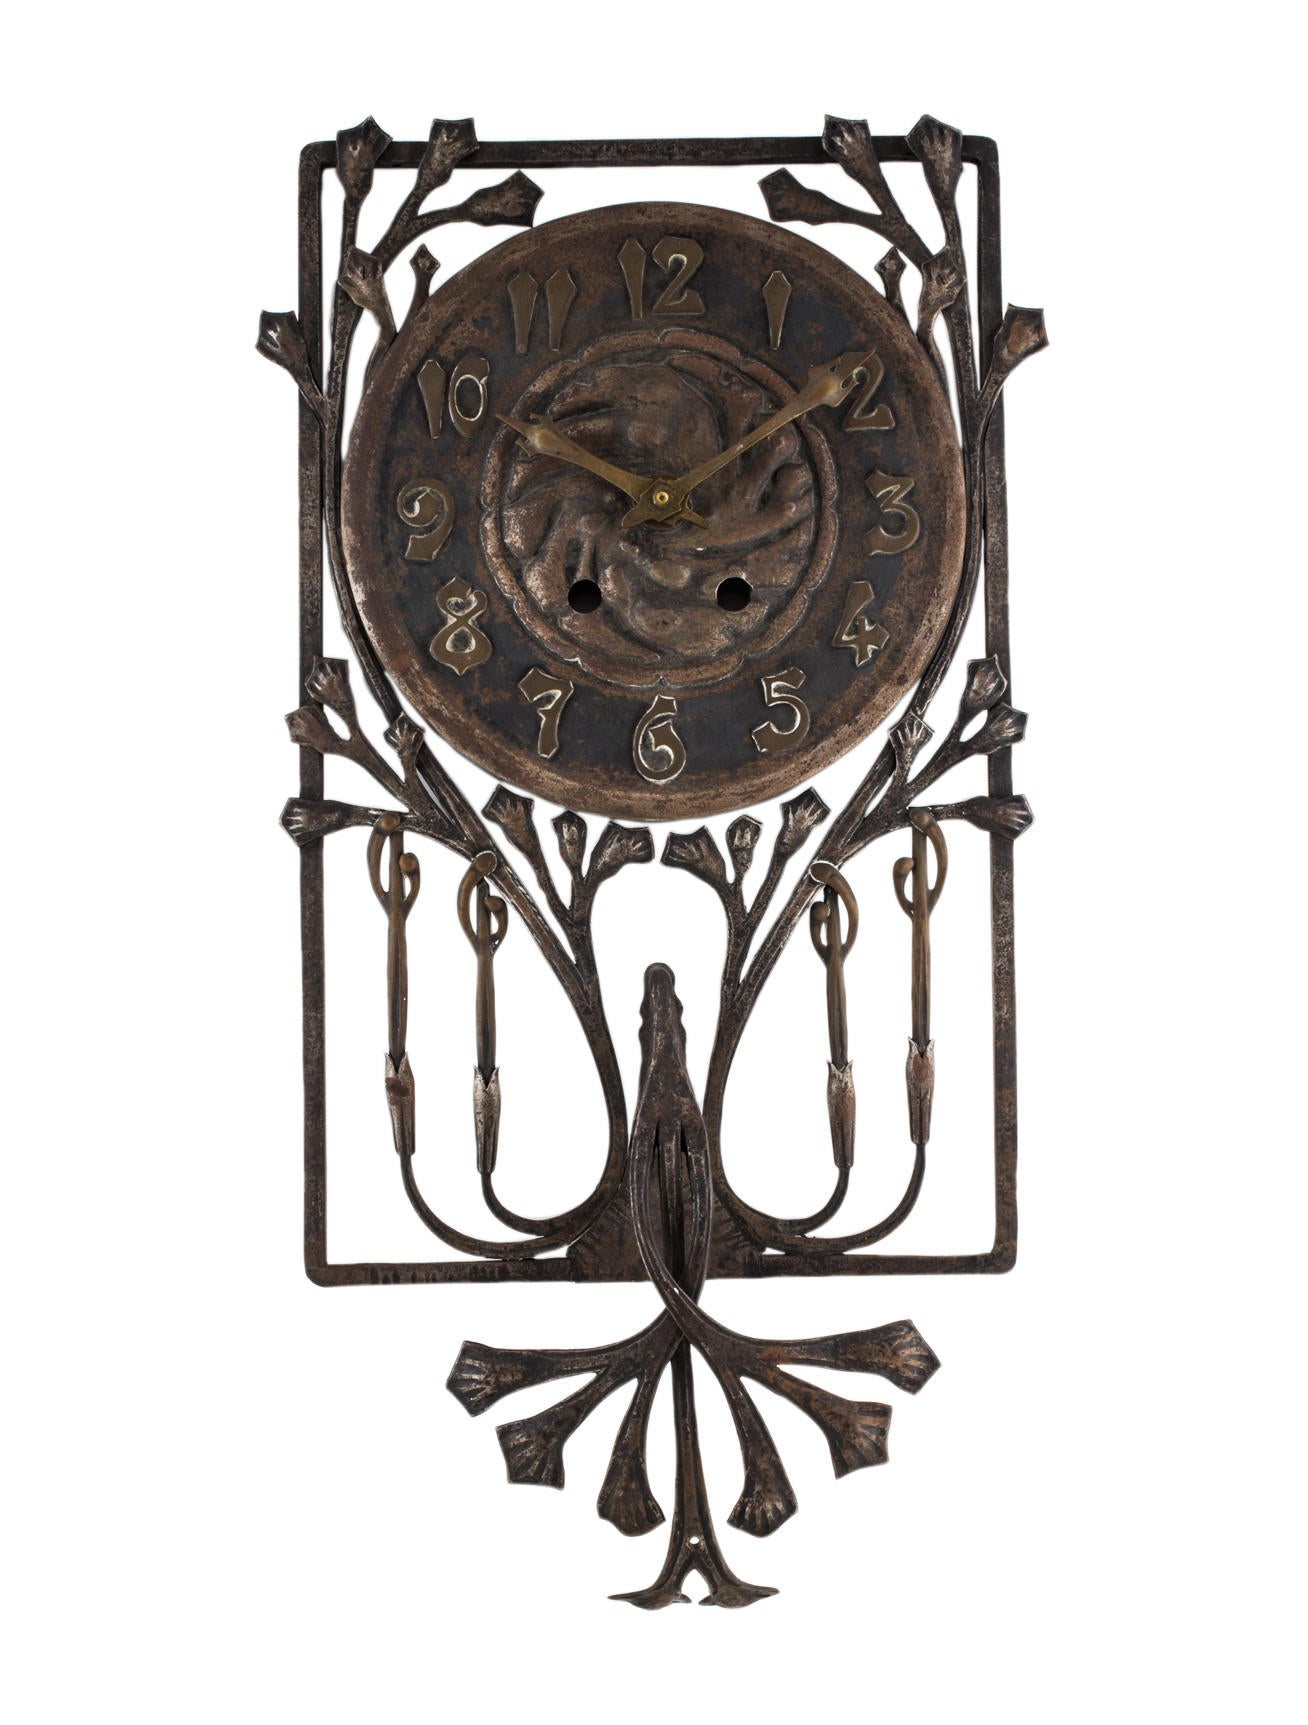 Louis majorelle art nouveau clock decor and accessories for Art nouveau decoration